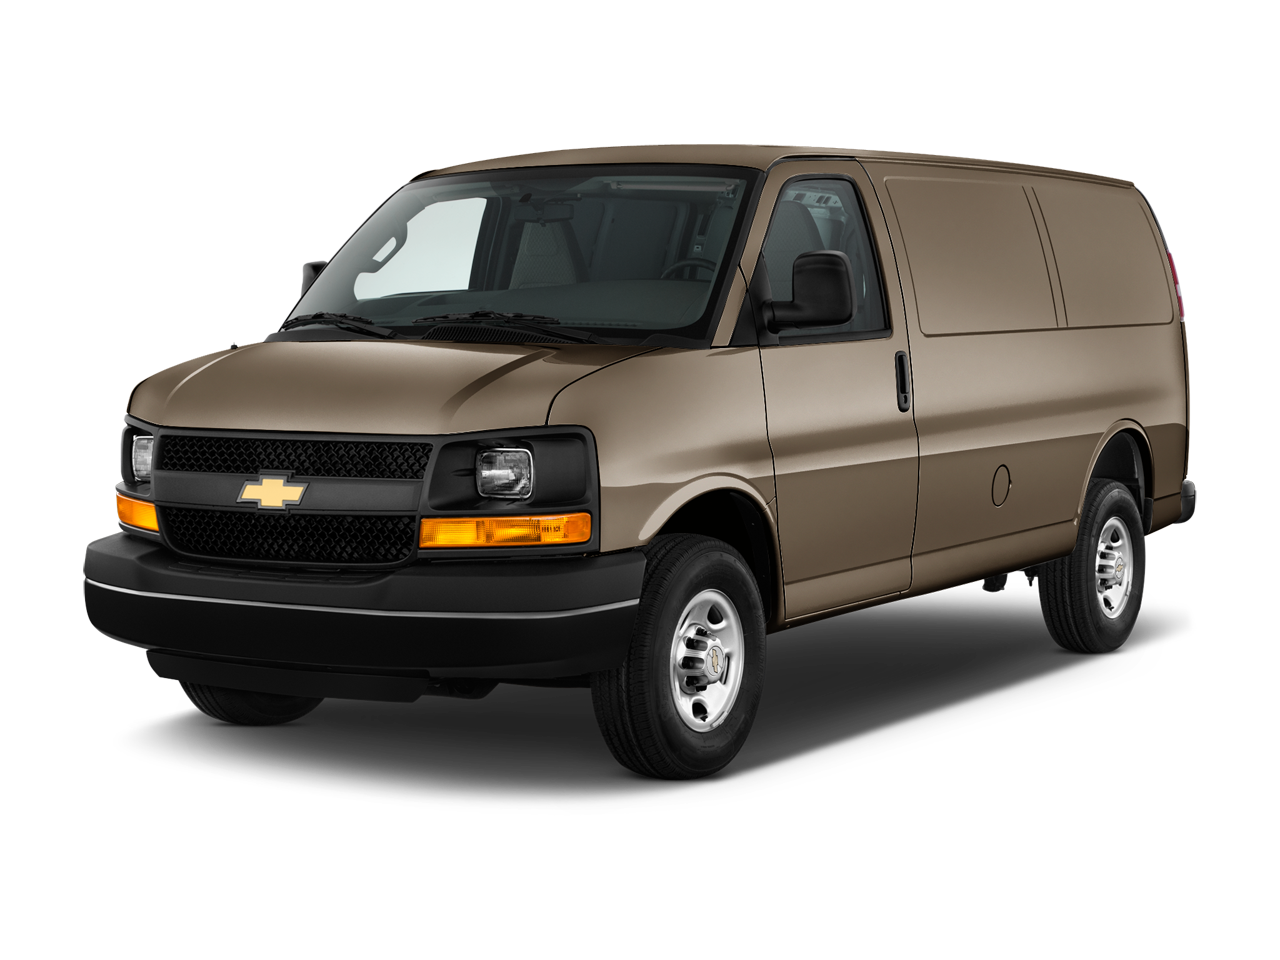 new 2017 chevrolet express cargo work van near libertyville il libertyville chevrolet. Black Bedroom Furniture Sets. Home Design Ideas